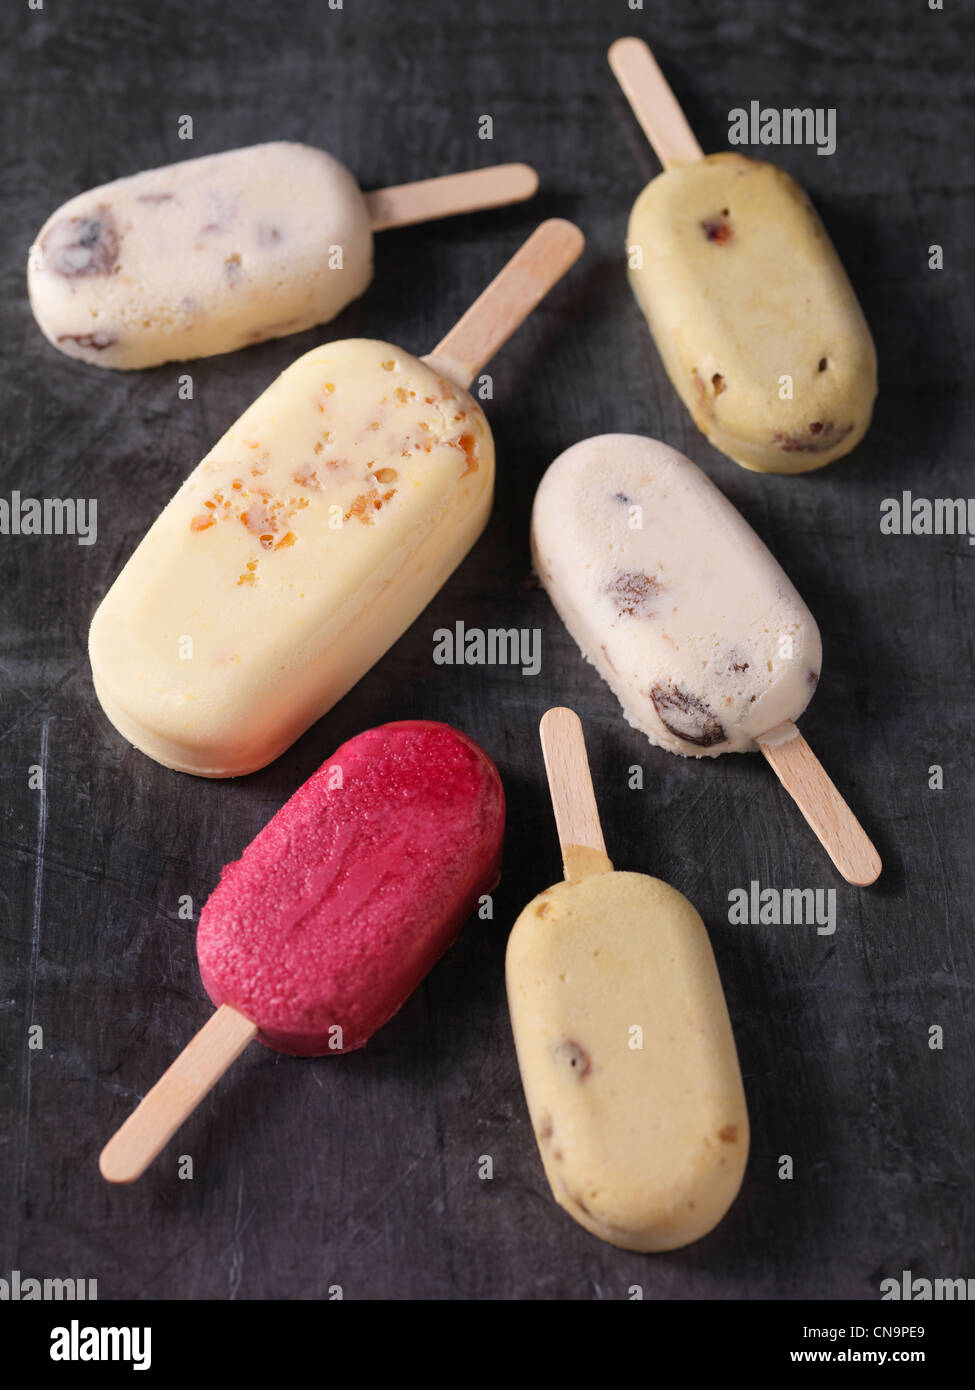 Variety of ice cream bars - Stock Image